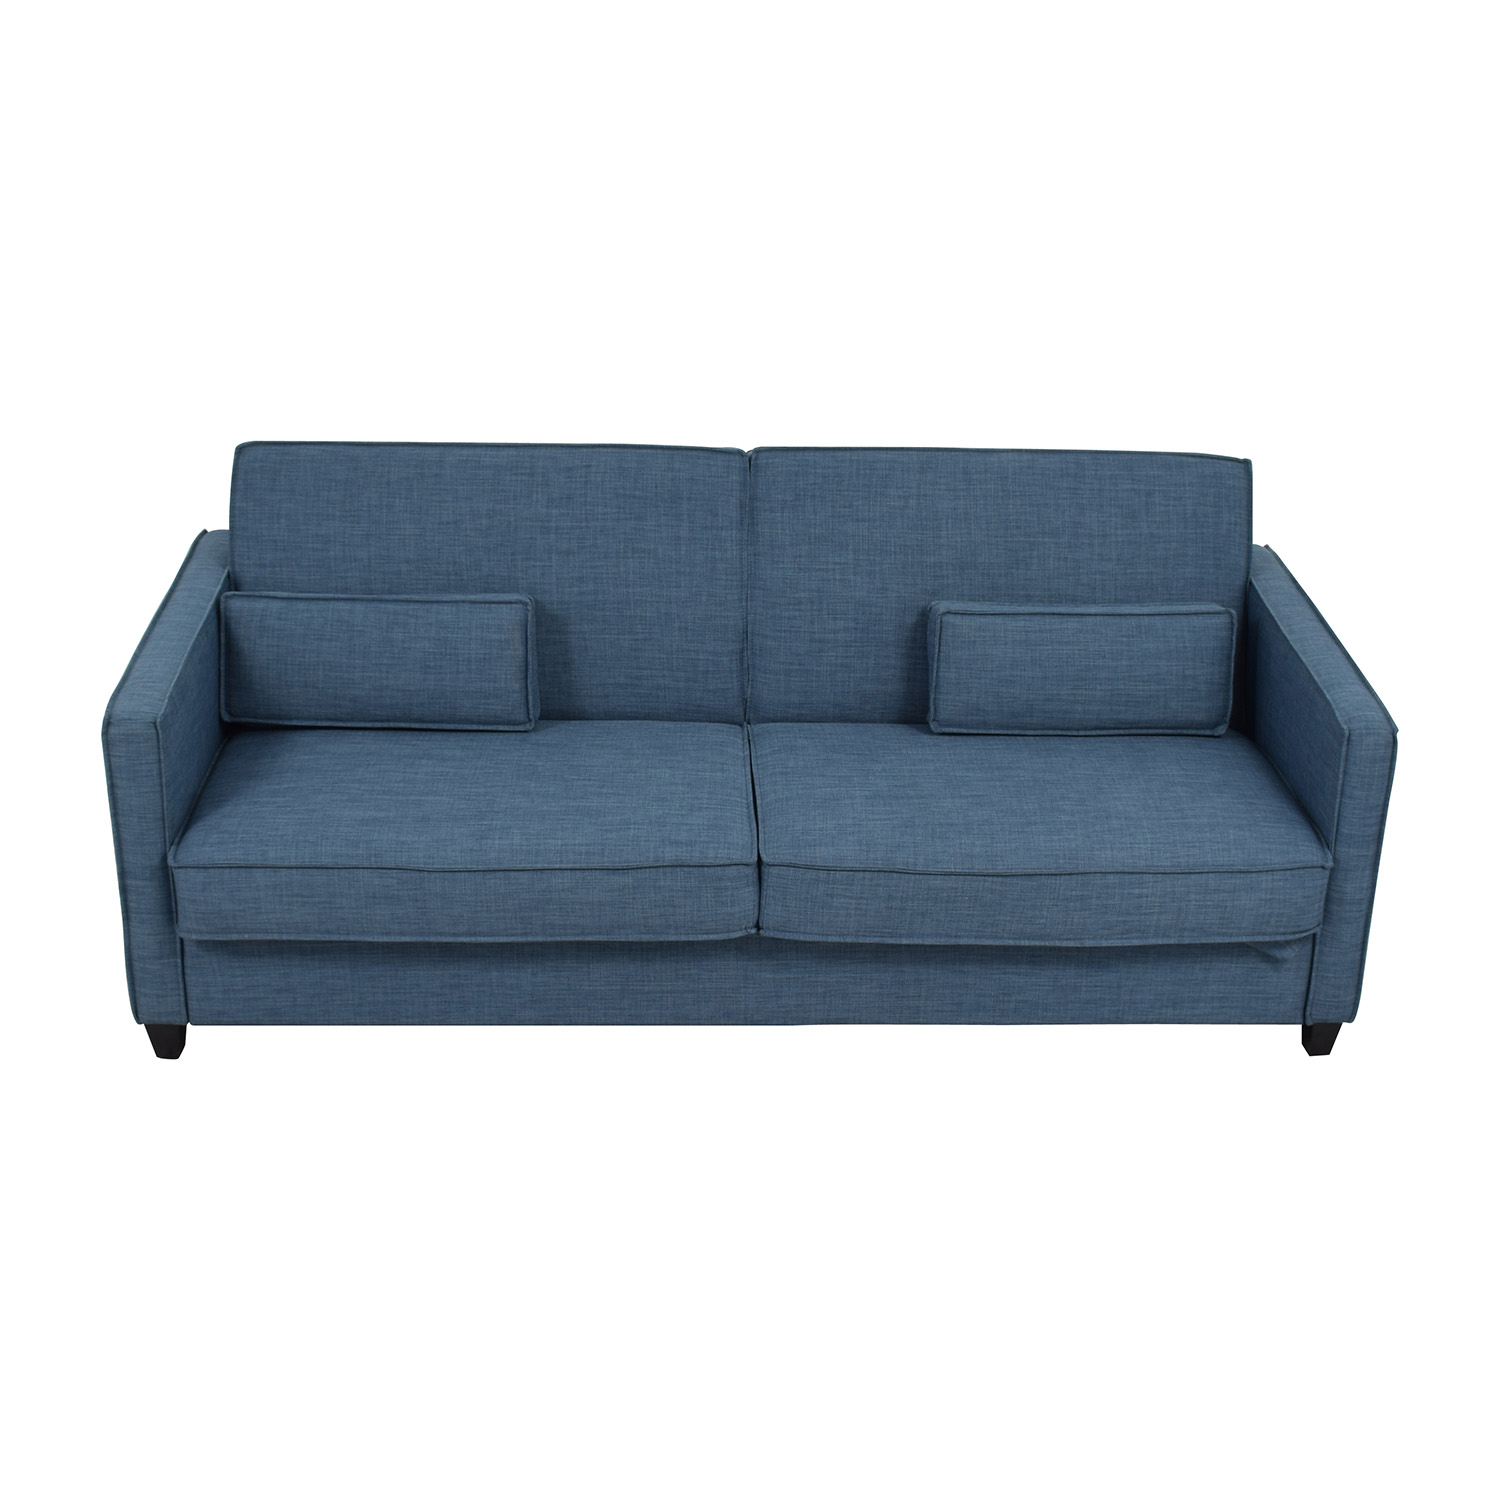 Outstanding 34 Off Blue Sofa With Two Throw Lumbar Pillows Sofas Beatyapartments Chair Design Images Beatyapartmentscom